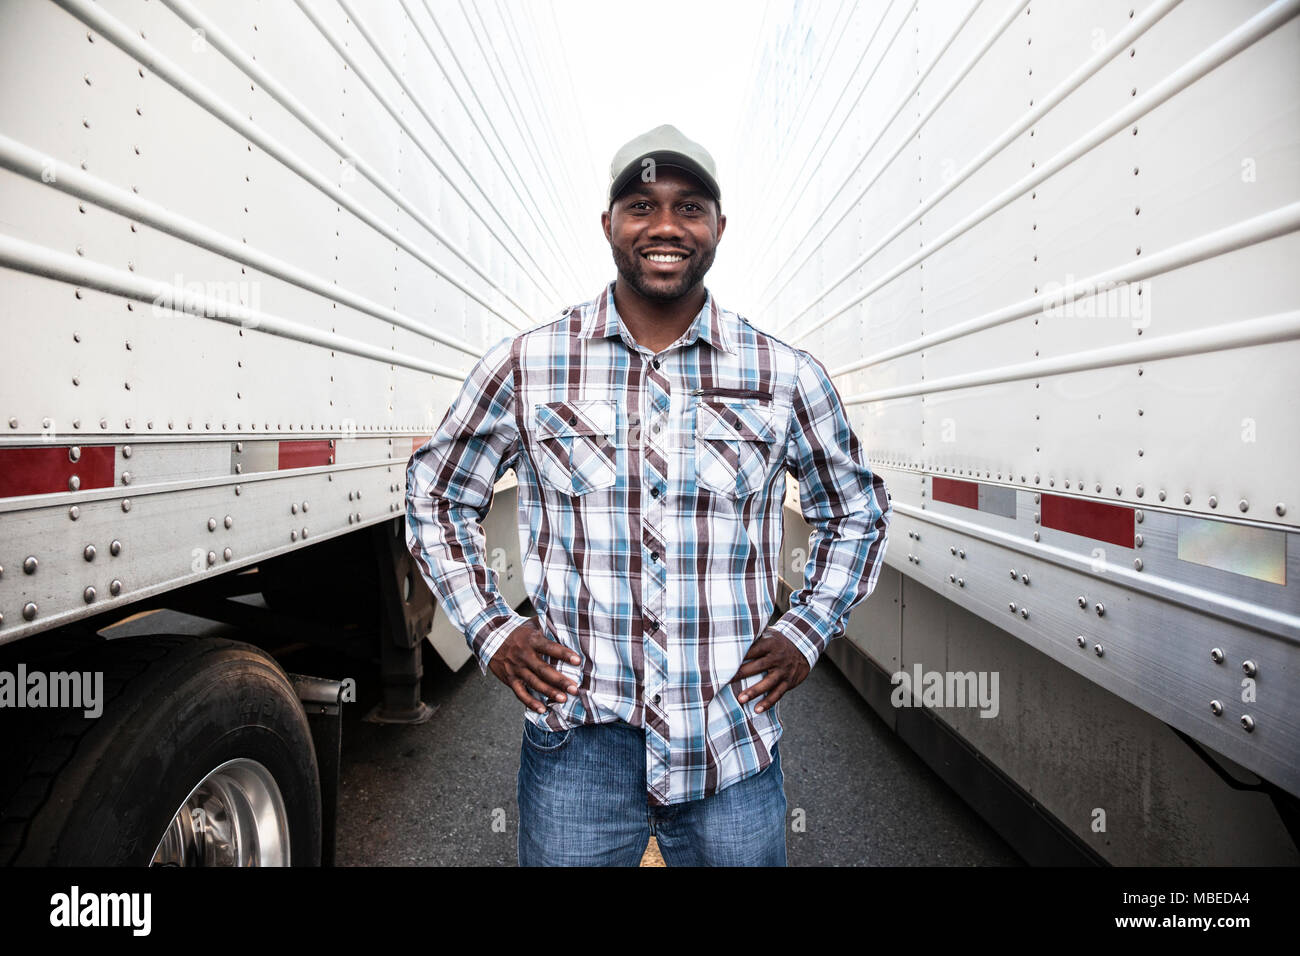 A truck driver standing between two large truck trailers in a trailer park, hands on hips, smiling, working clothes - Stock Image